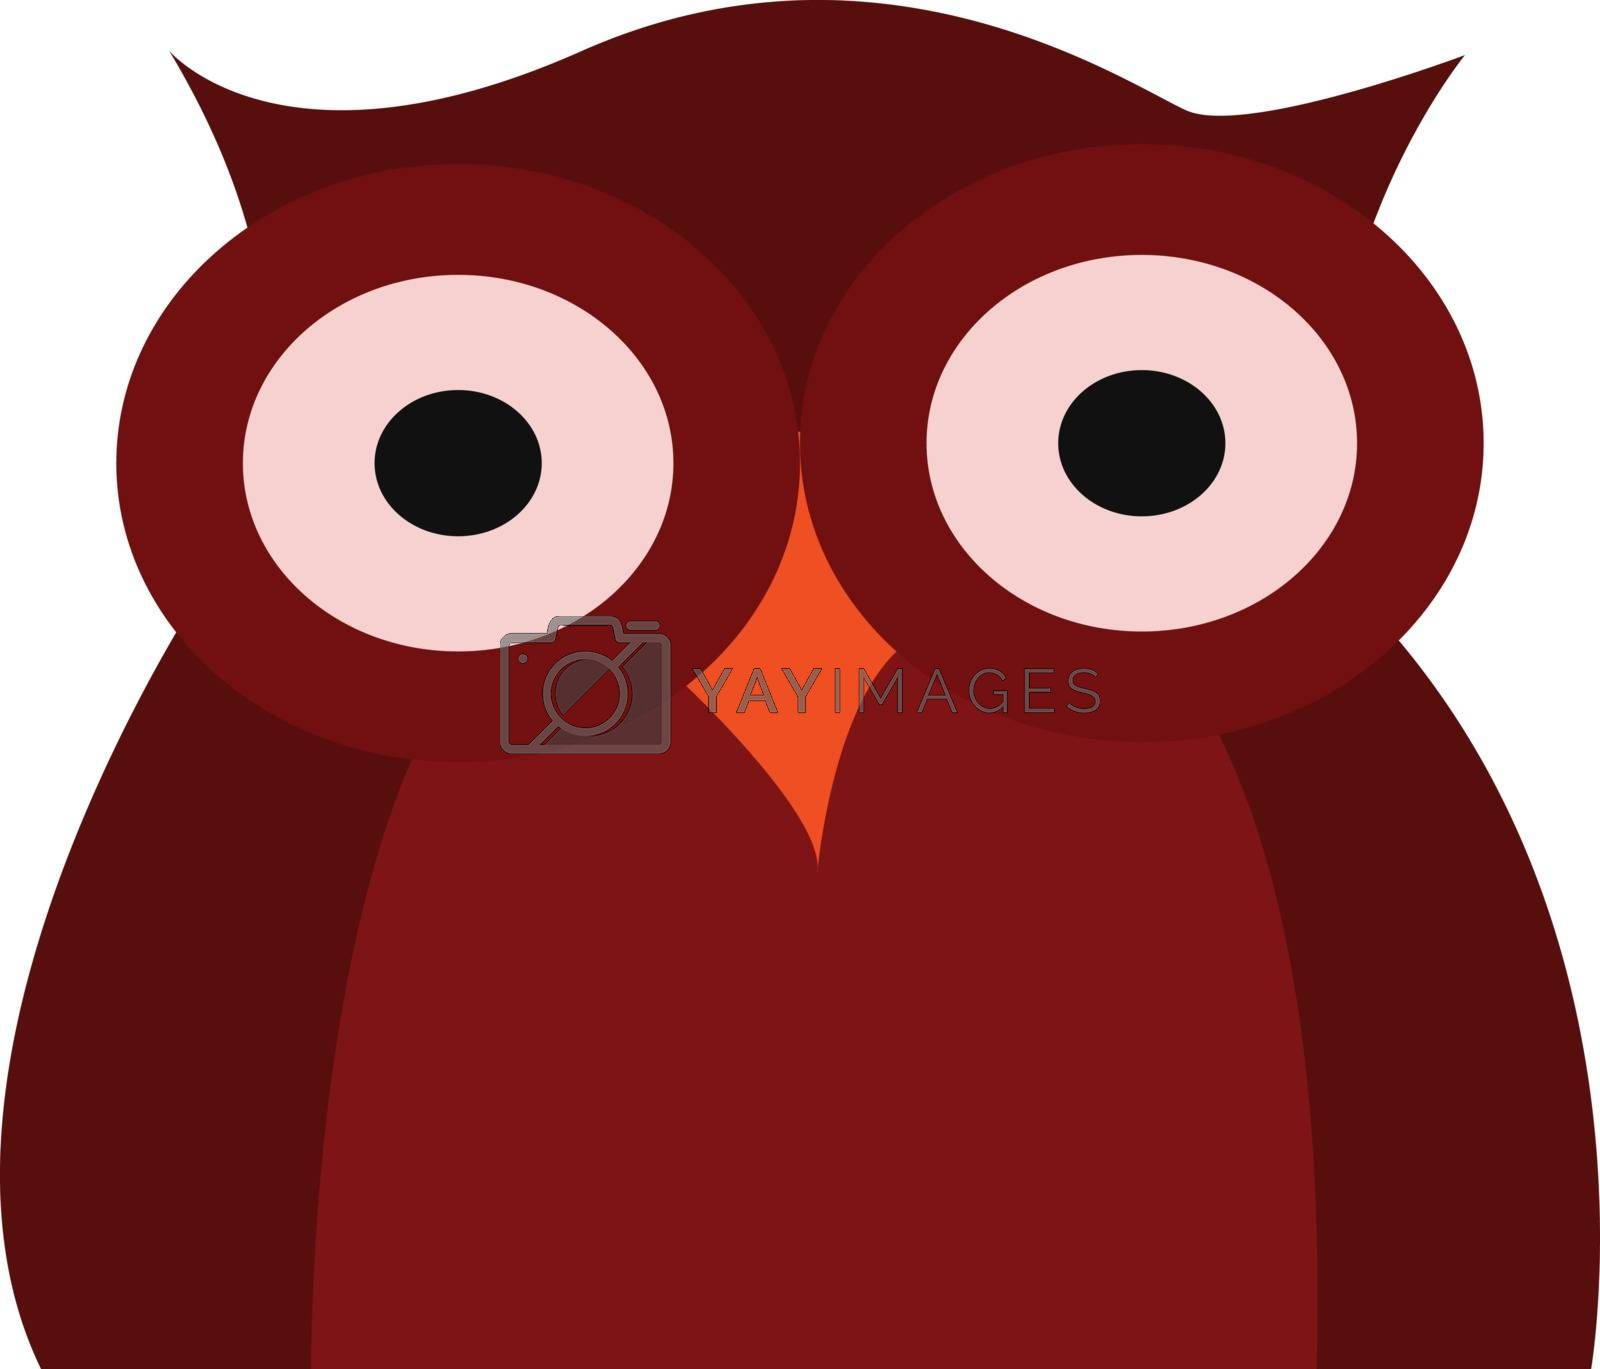 Royalty free image of Clipart of a dark red owl vector or color illustration by Morphart